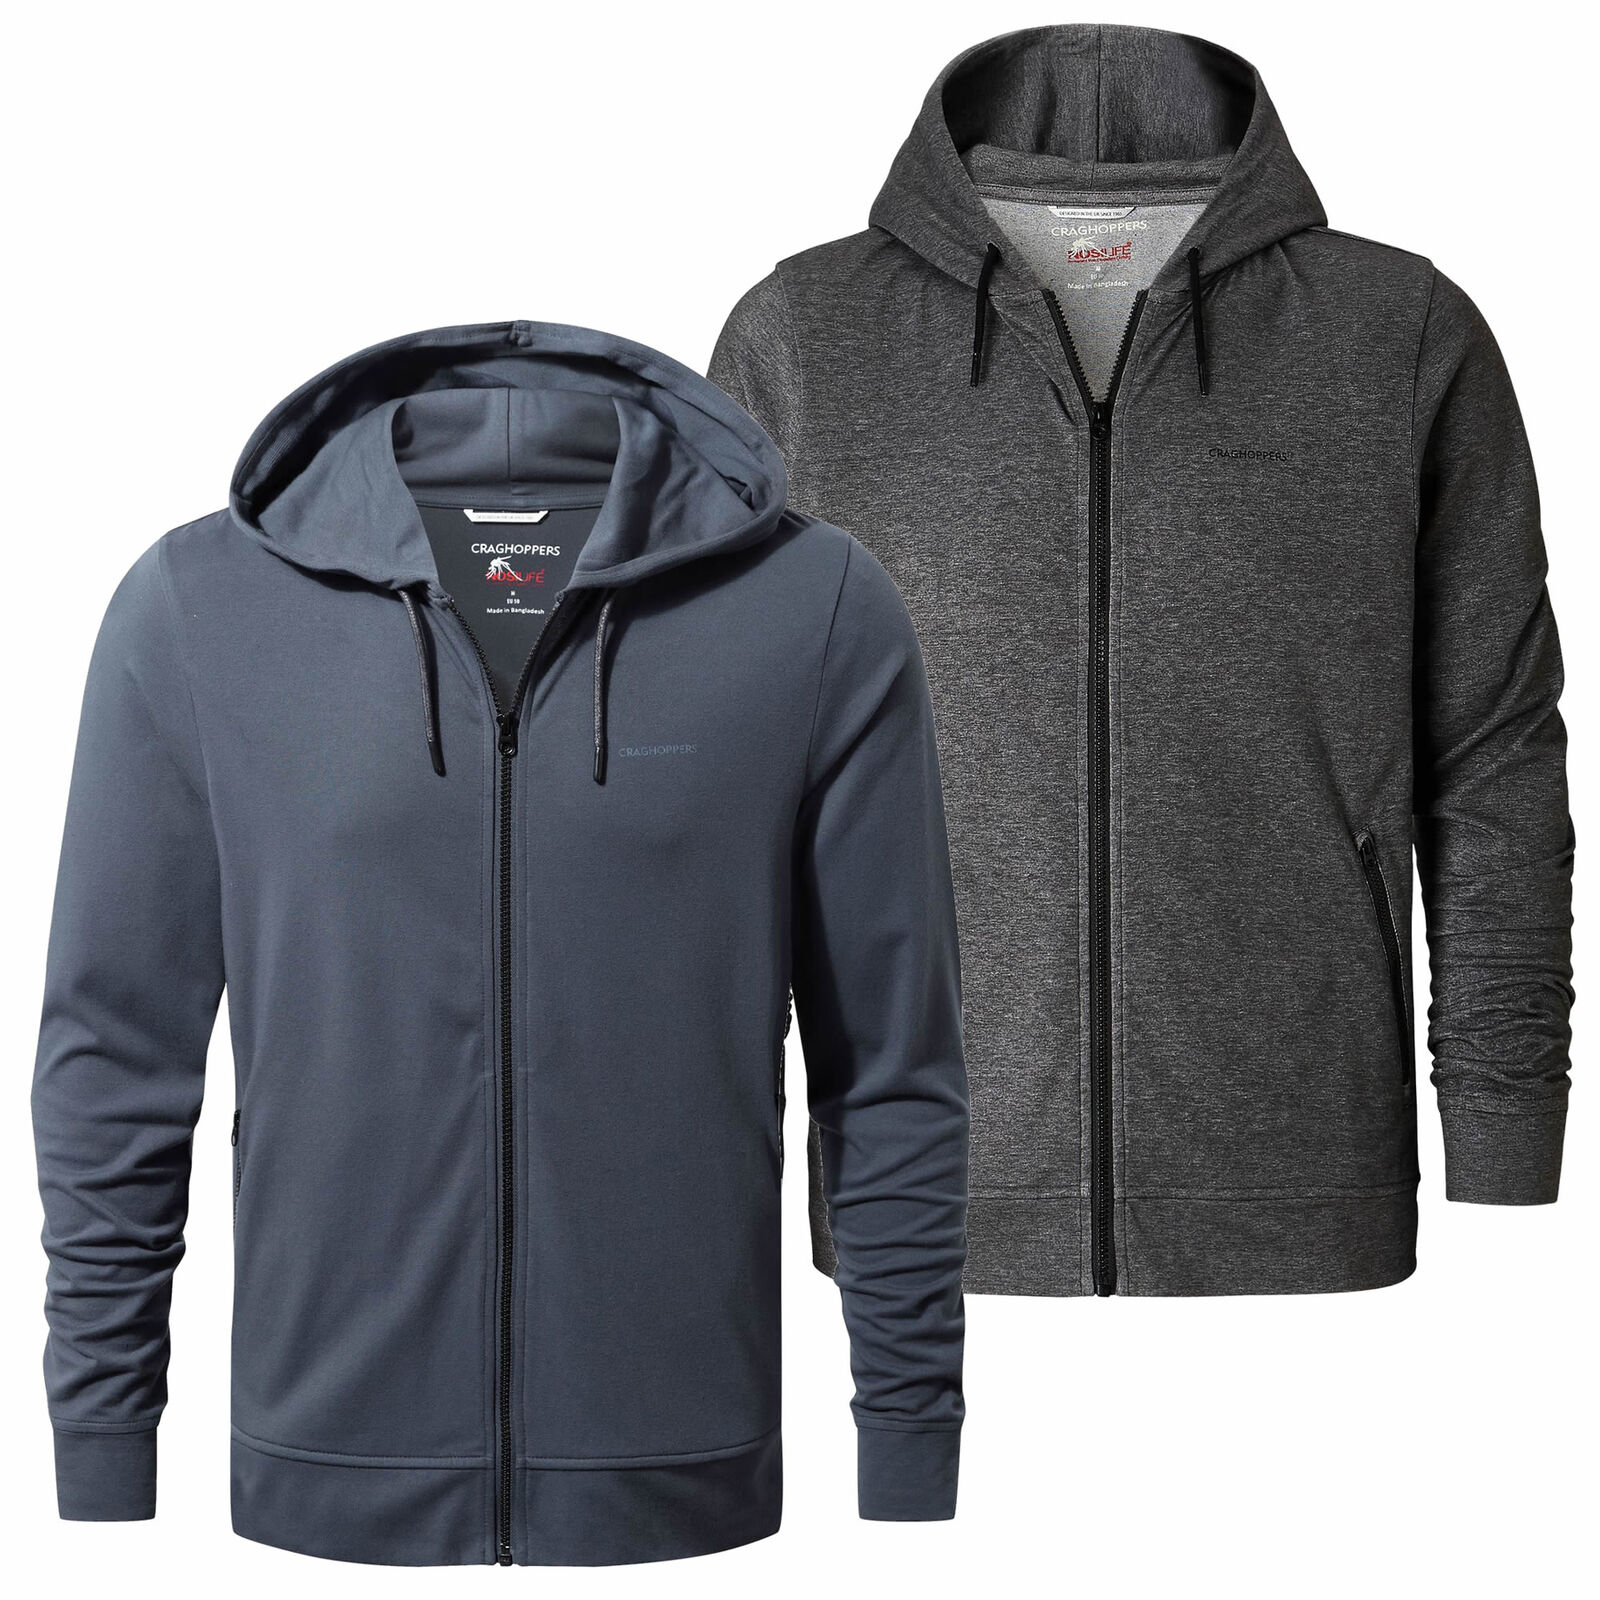 Craghoppers NosiLife Insect Repellent Tilpa Mens Hooded Jacket